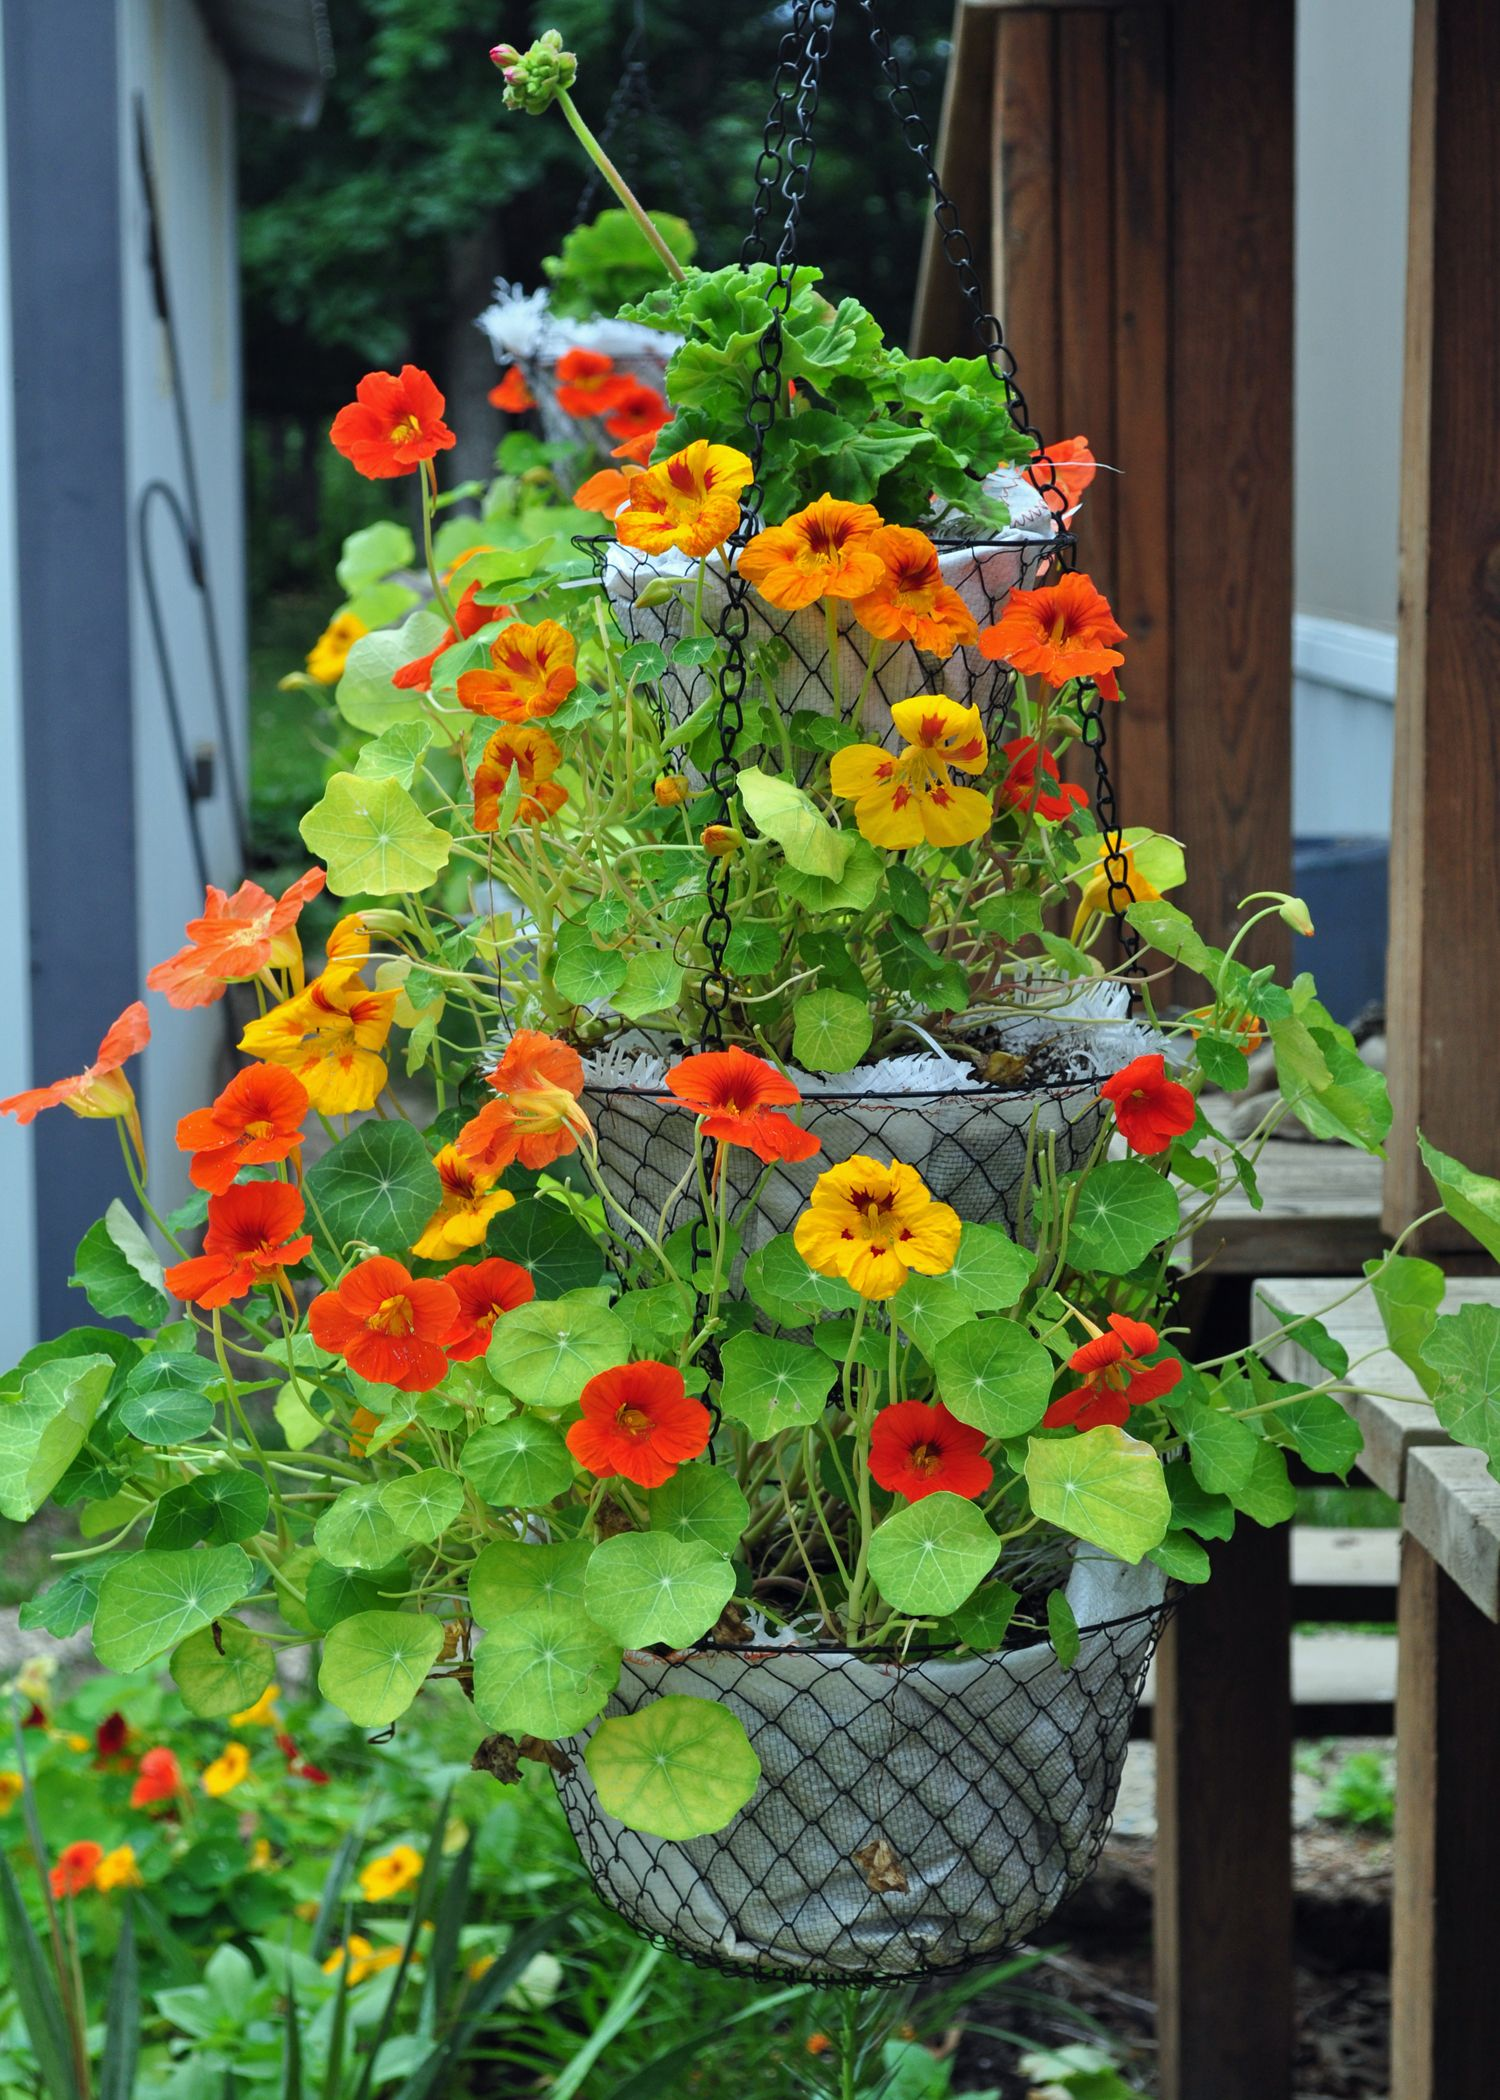 Nasturtiums And Geranium That I Planted In The 3 Tiered Kitchen Hanging  Basket. Lined Baskets